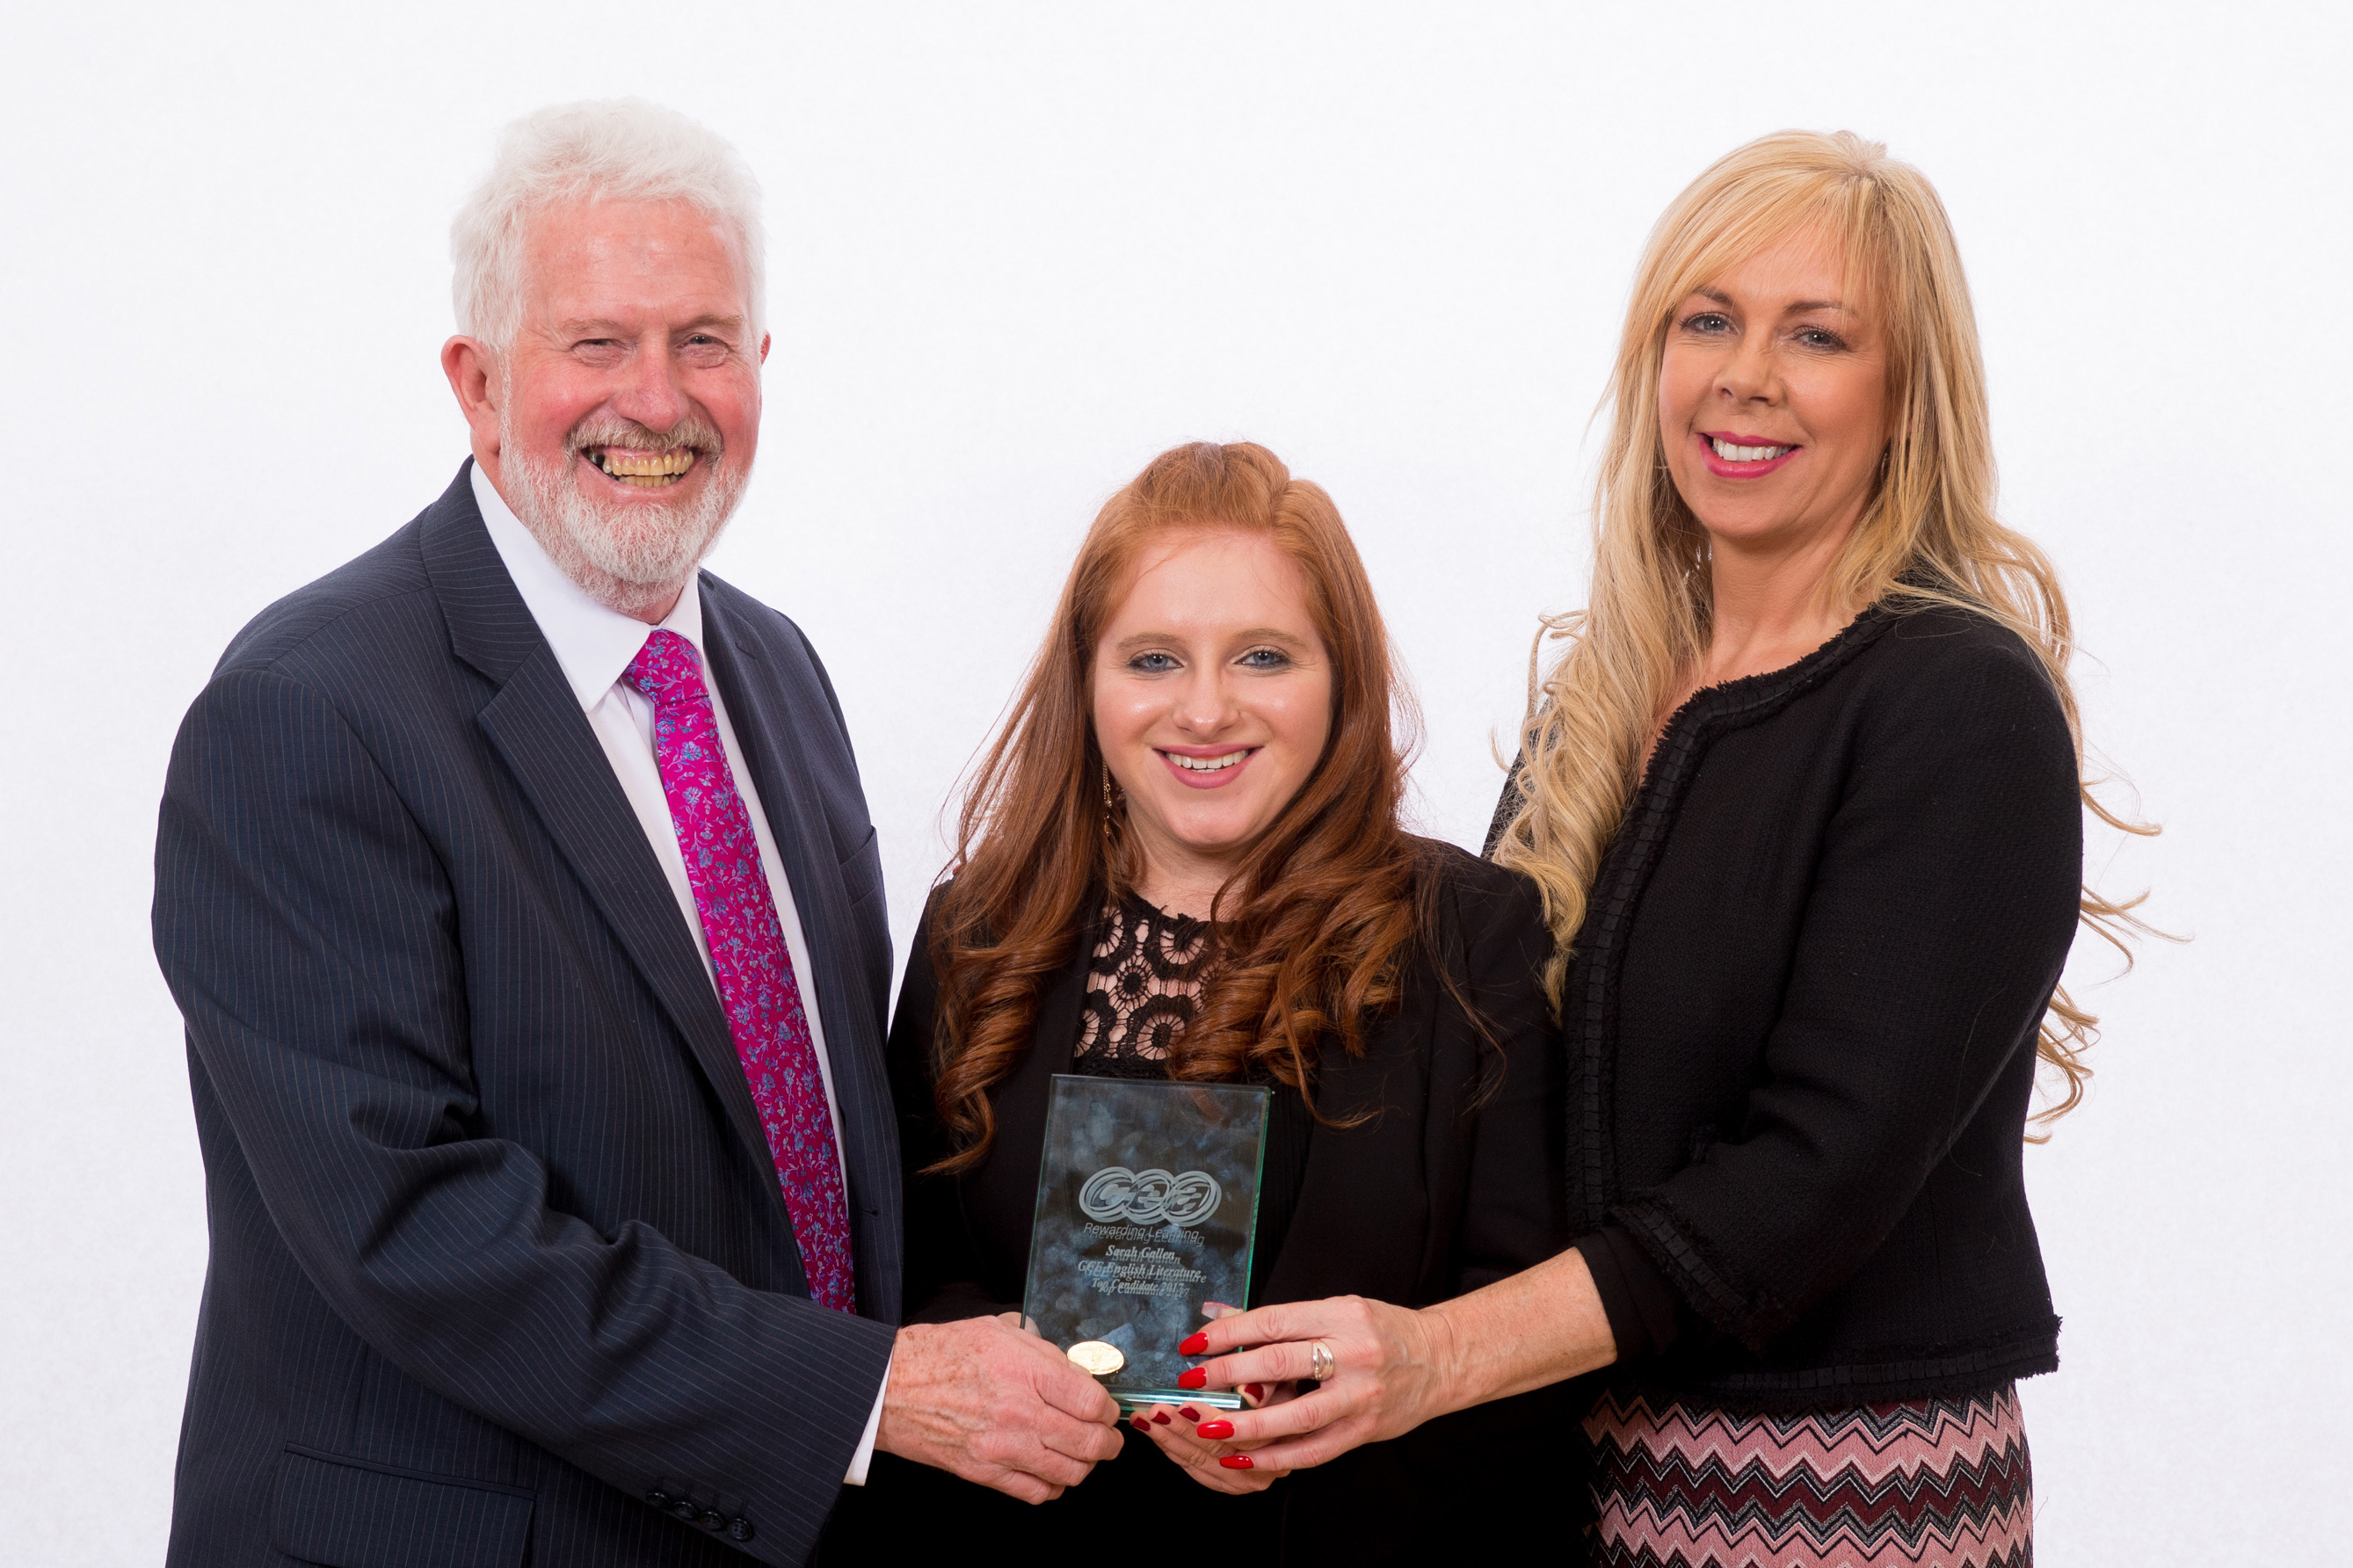 CCEA Chairman Trevor Carson and Principal Ms D. Gillespie are pictured with Sarah Gallen who was placed joint First in English Literature at A-Level.